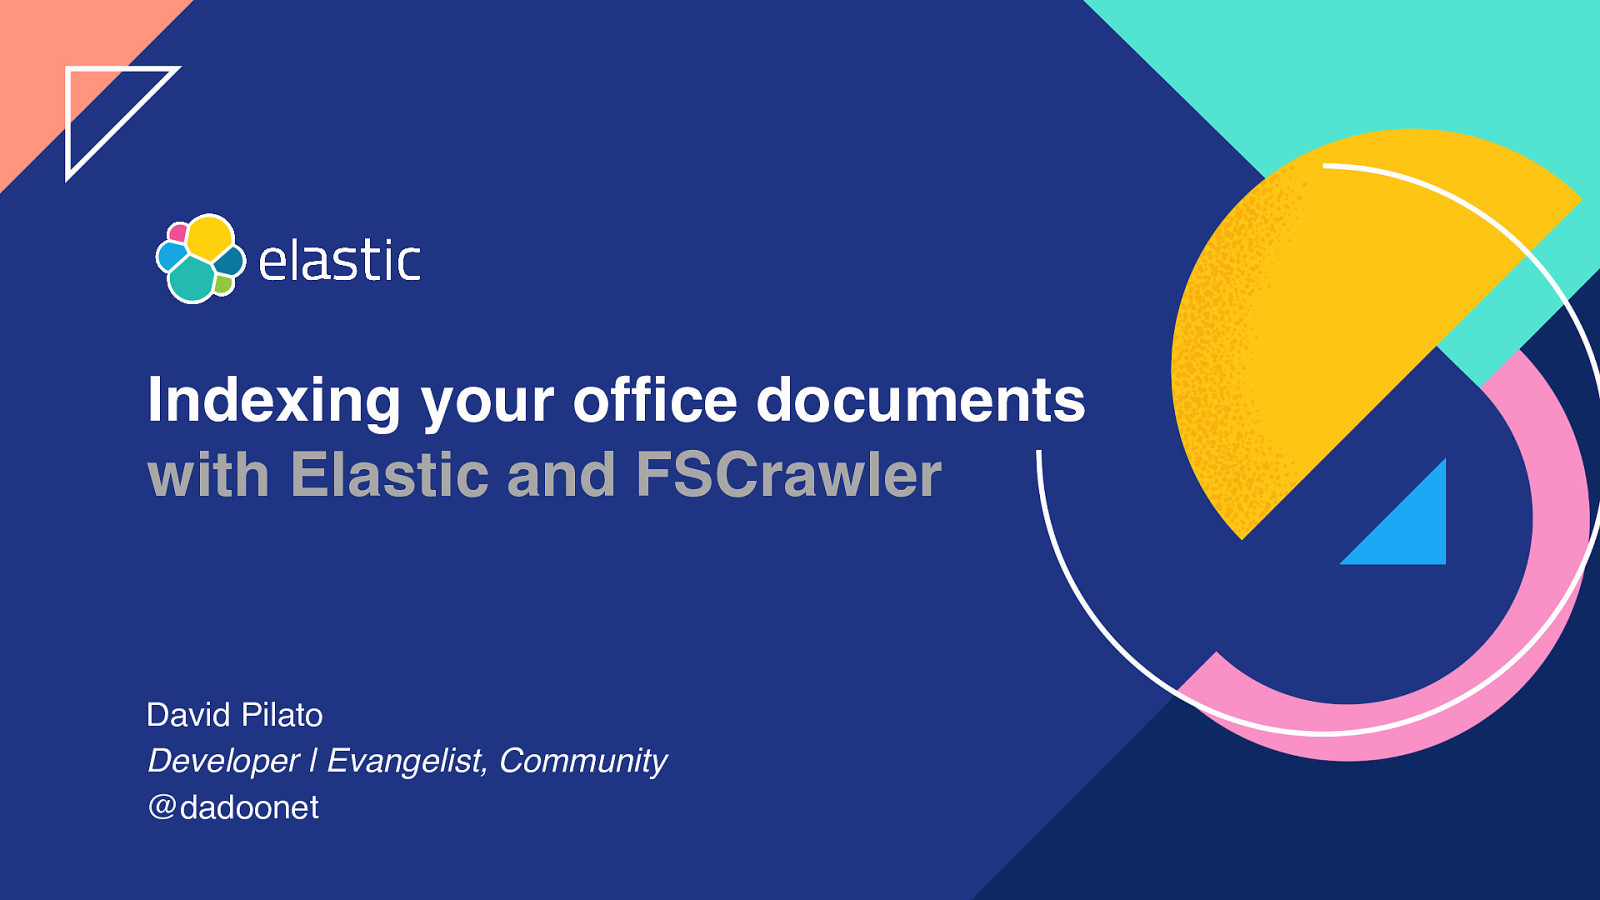 Indexing your office documents with Elastic stack and FSCrawler by David Pilato